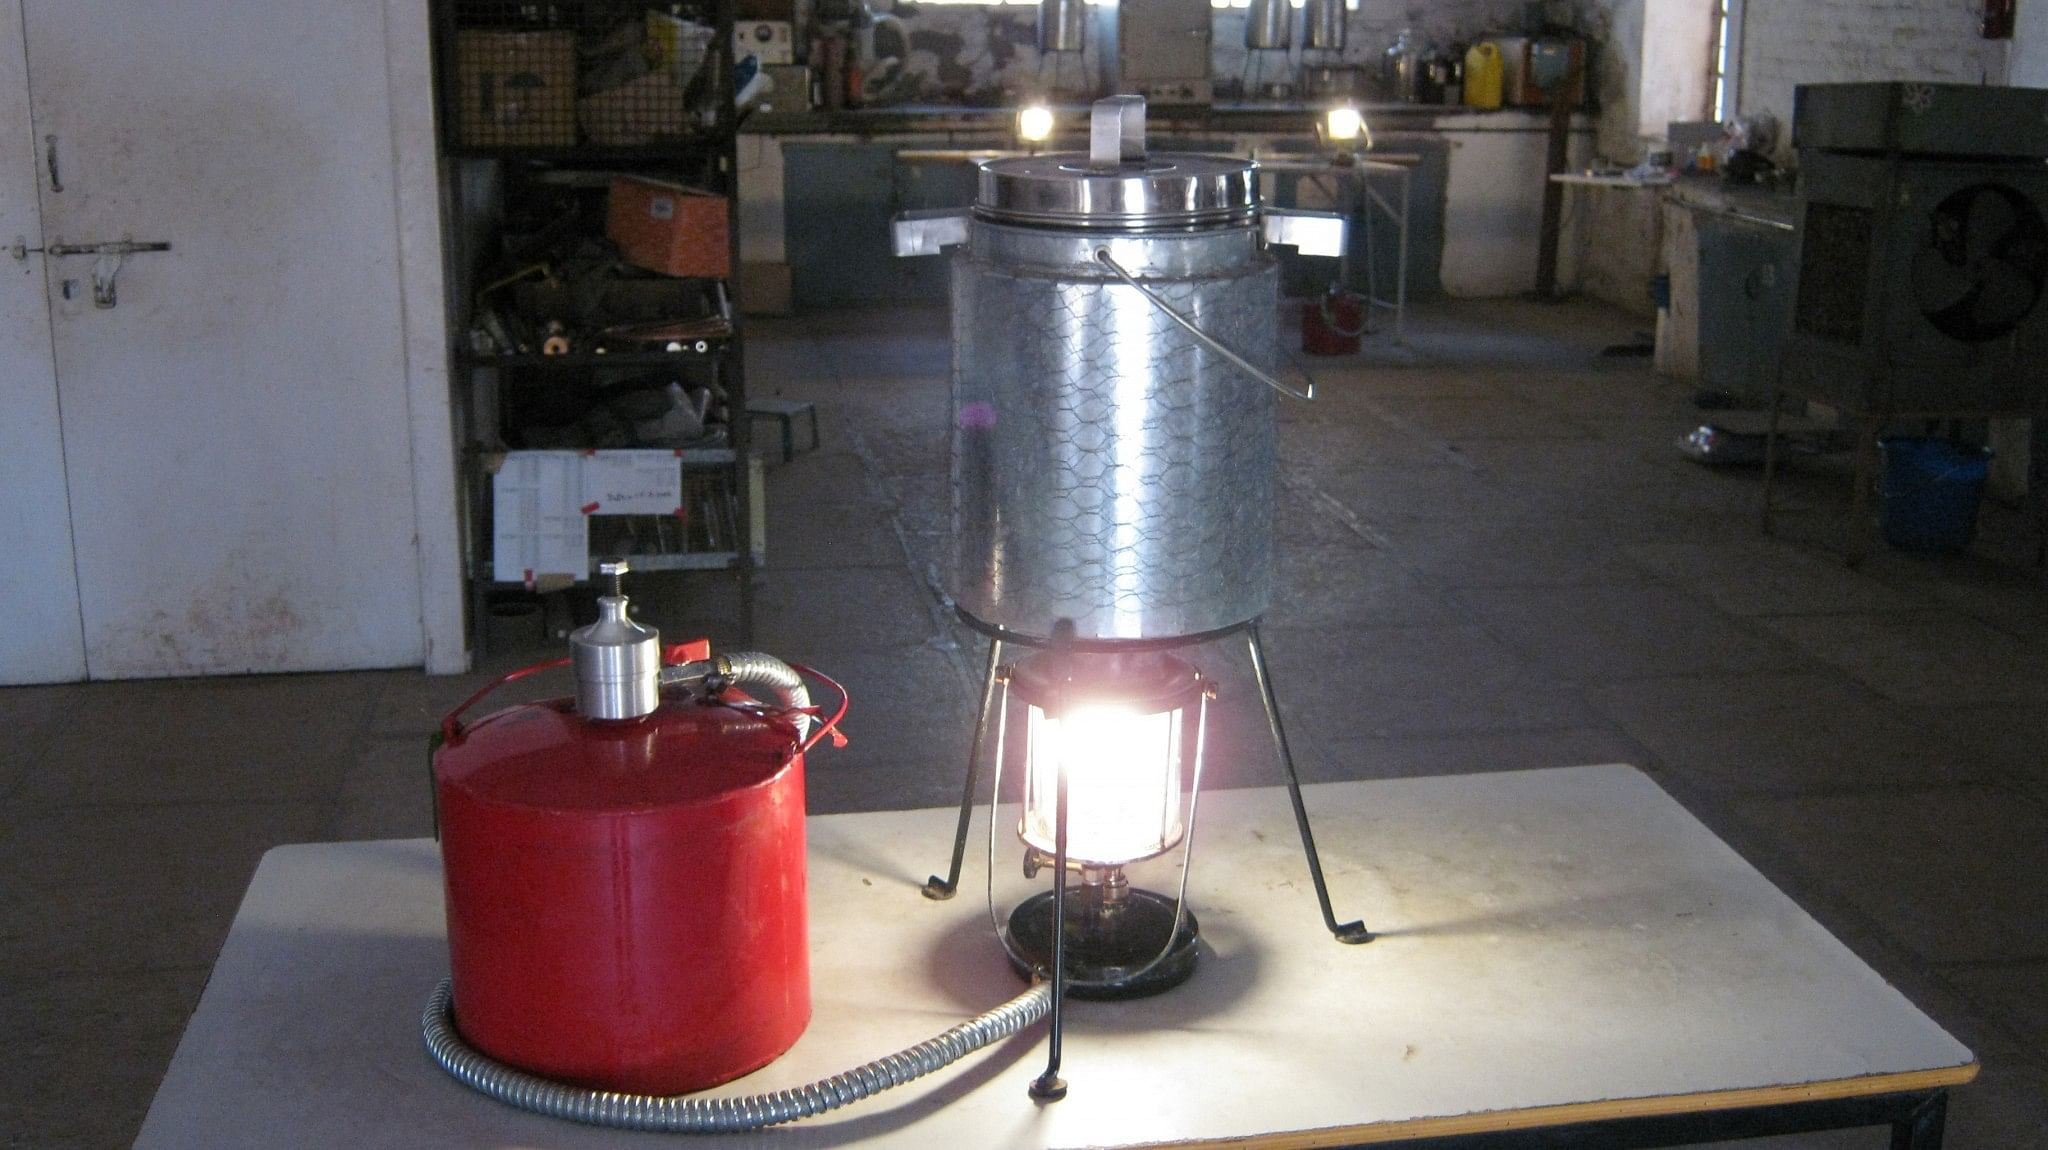 Lanstove- a lamp and also a stove.